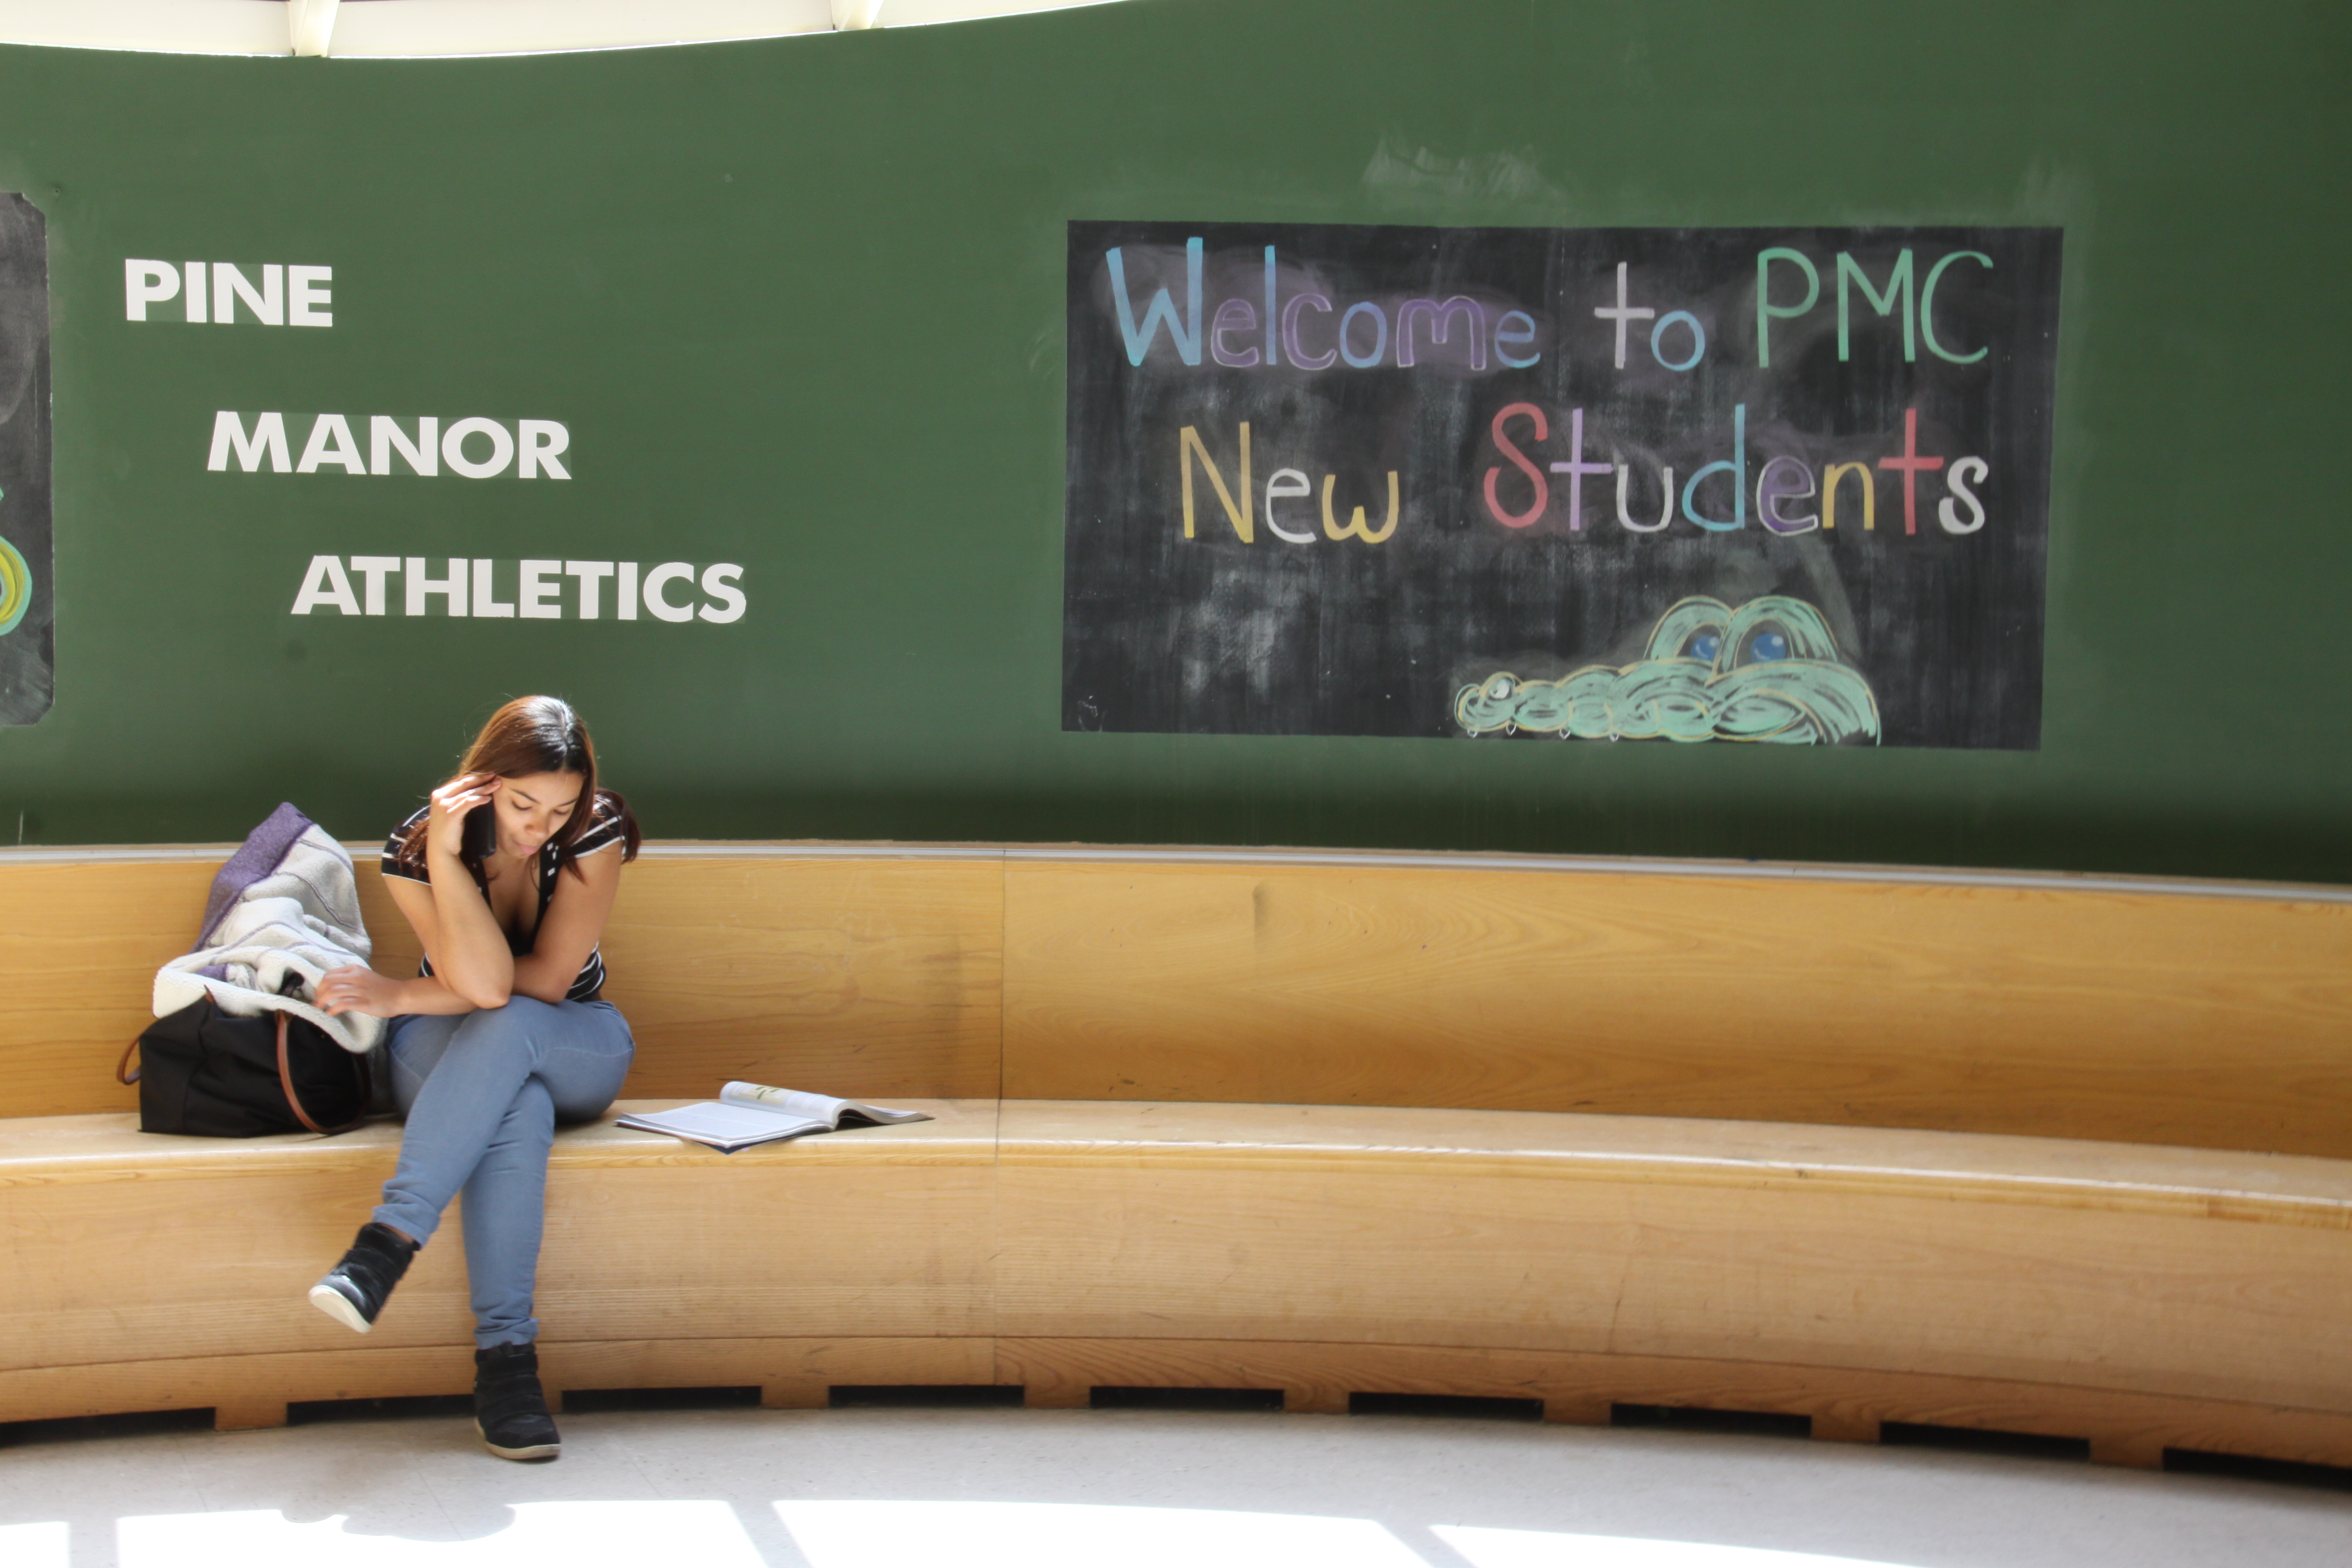 Pine Manor College suffers from low enrollment, high debt and a small endowment.